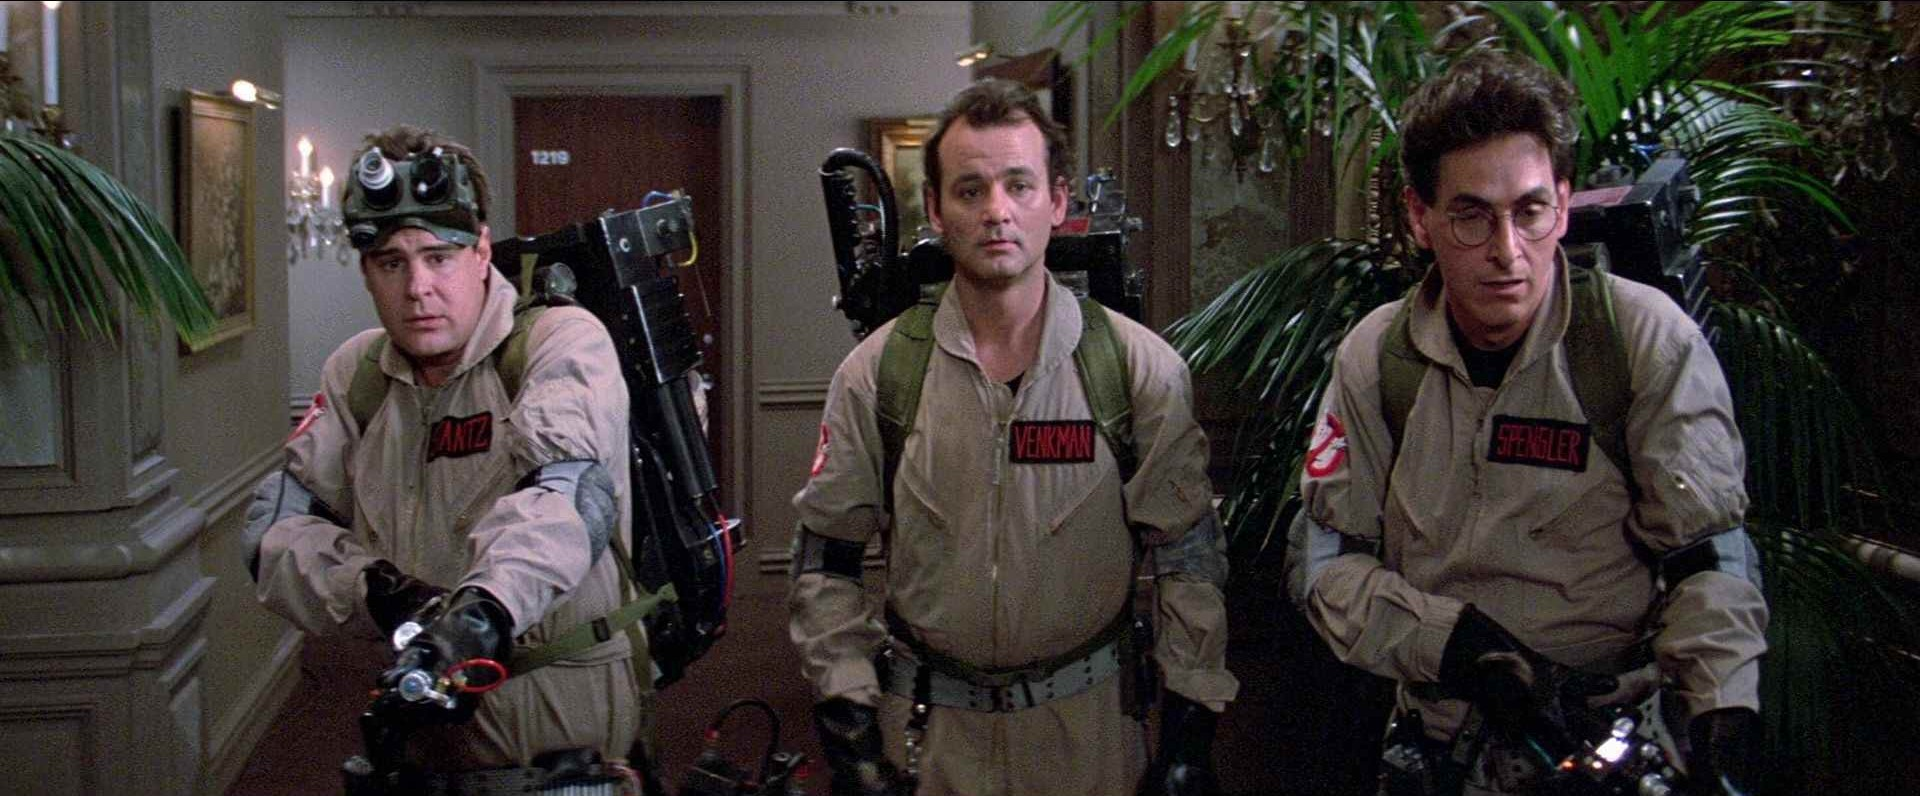 There's Time - Ghostbusters